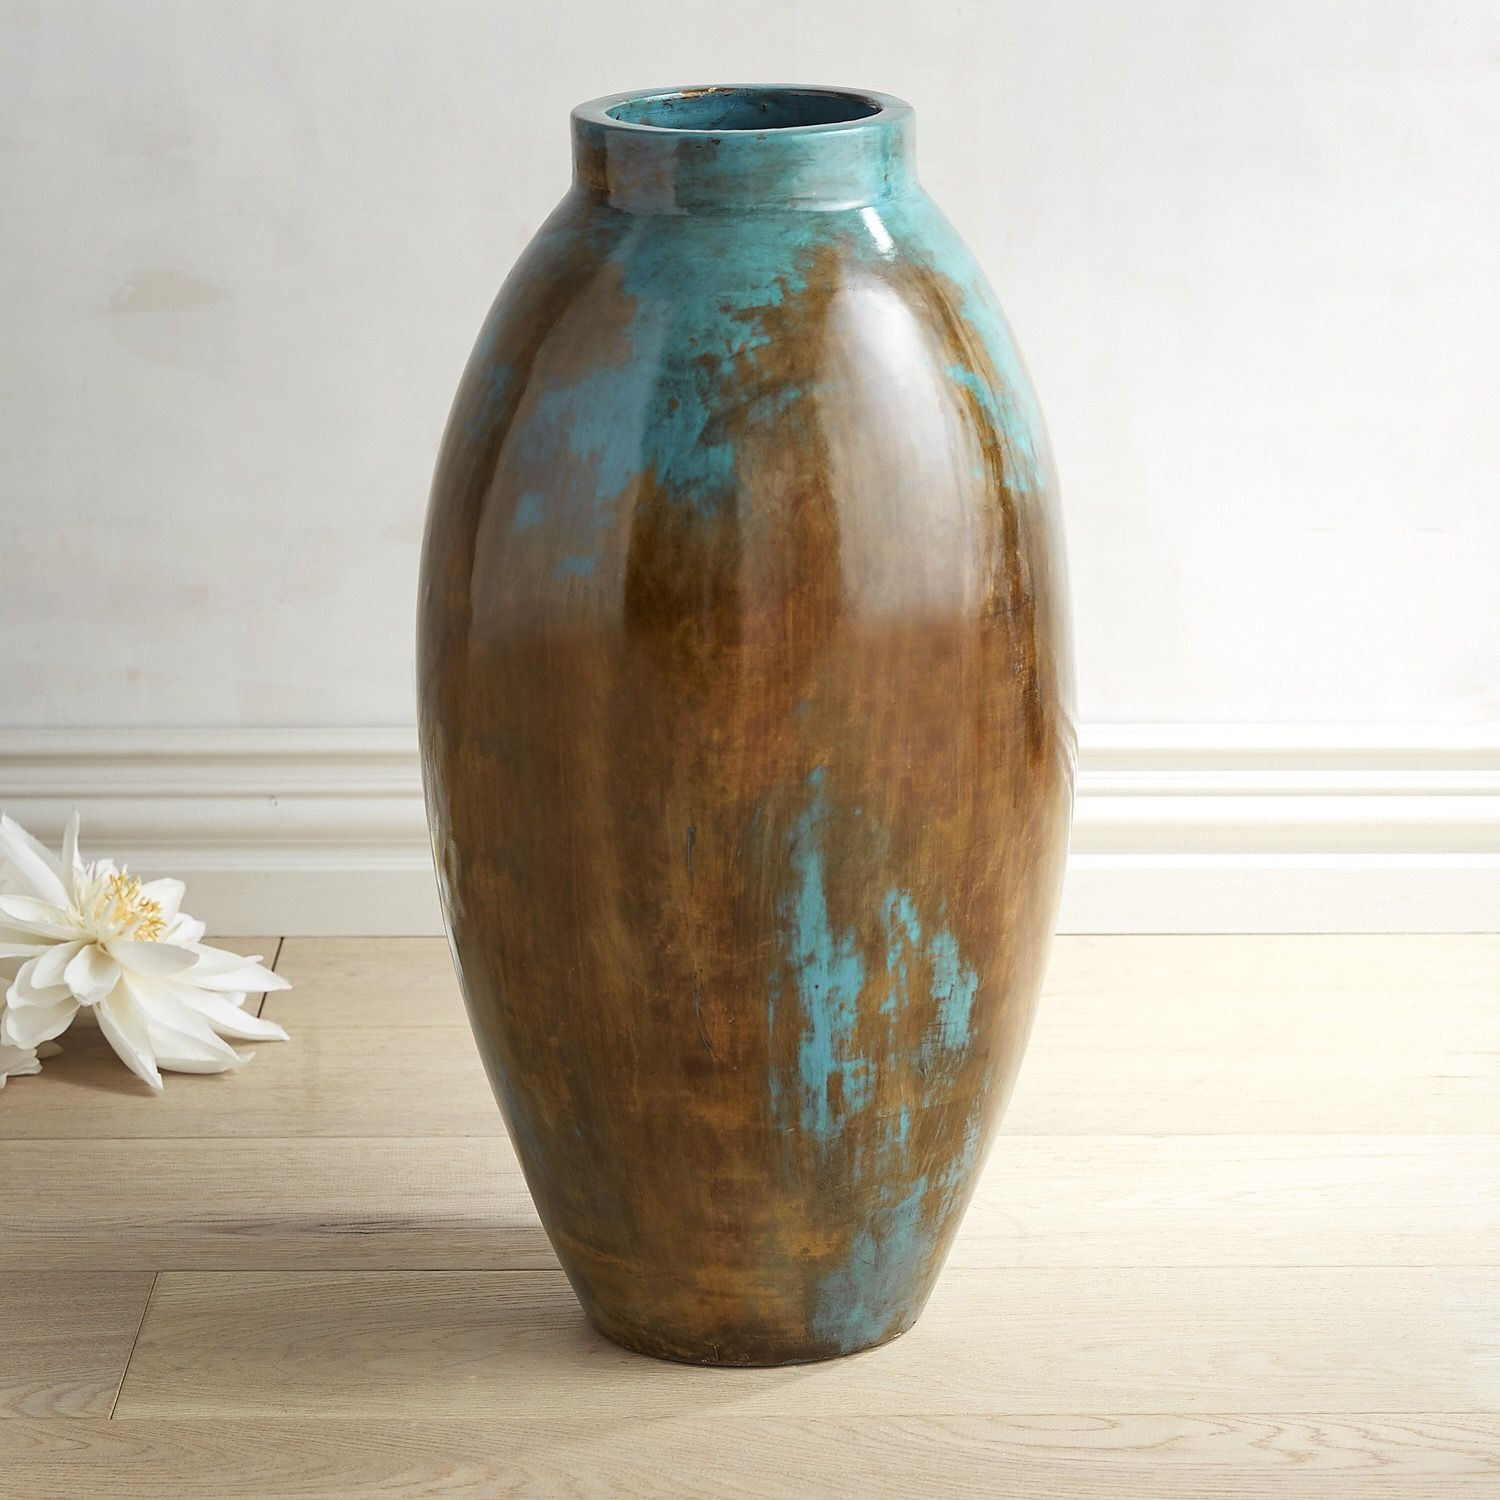 clay floor vase of blue brown oval floor vase products pinterest vase vases in blue brown oval floor vase